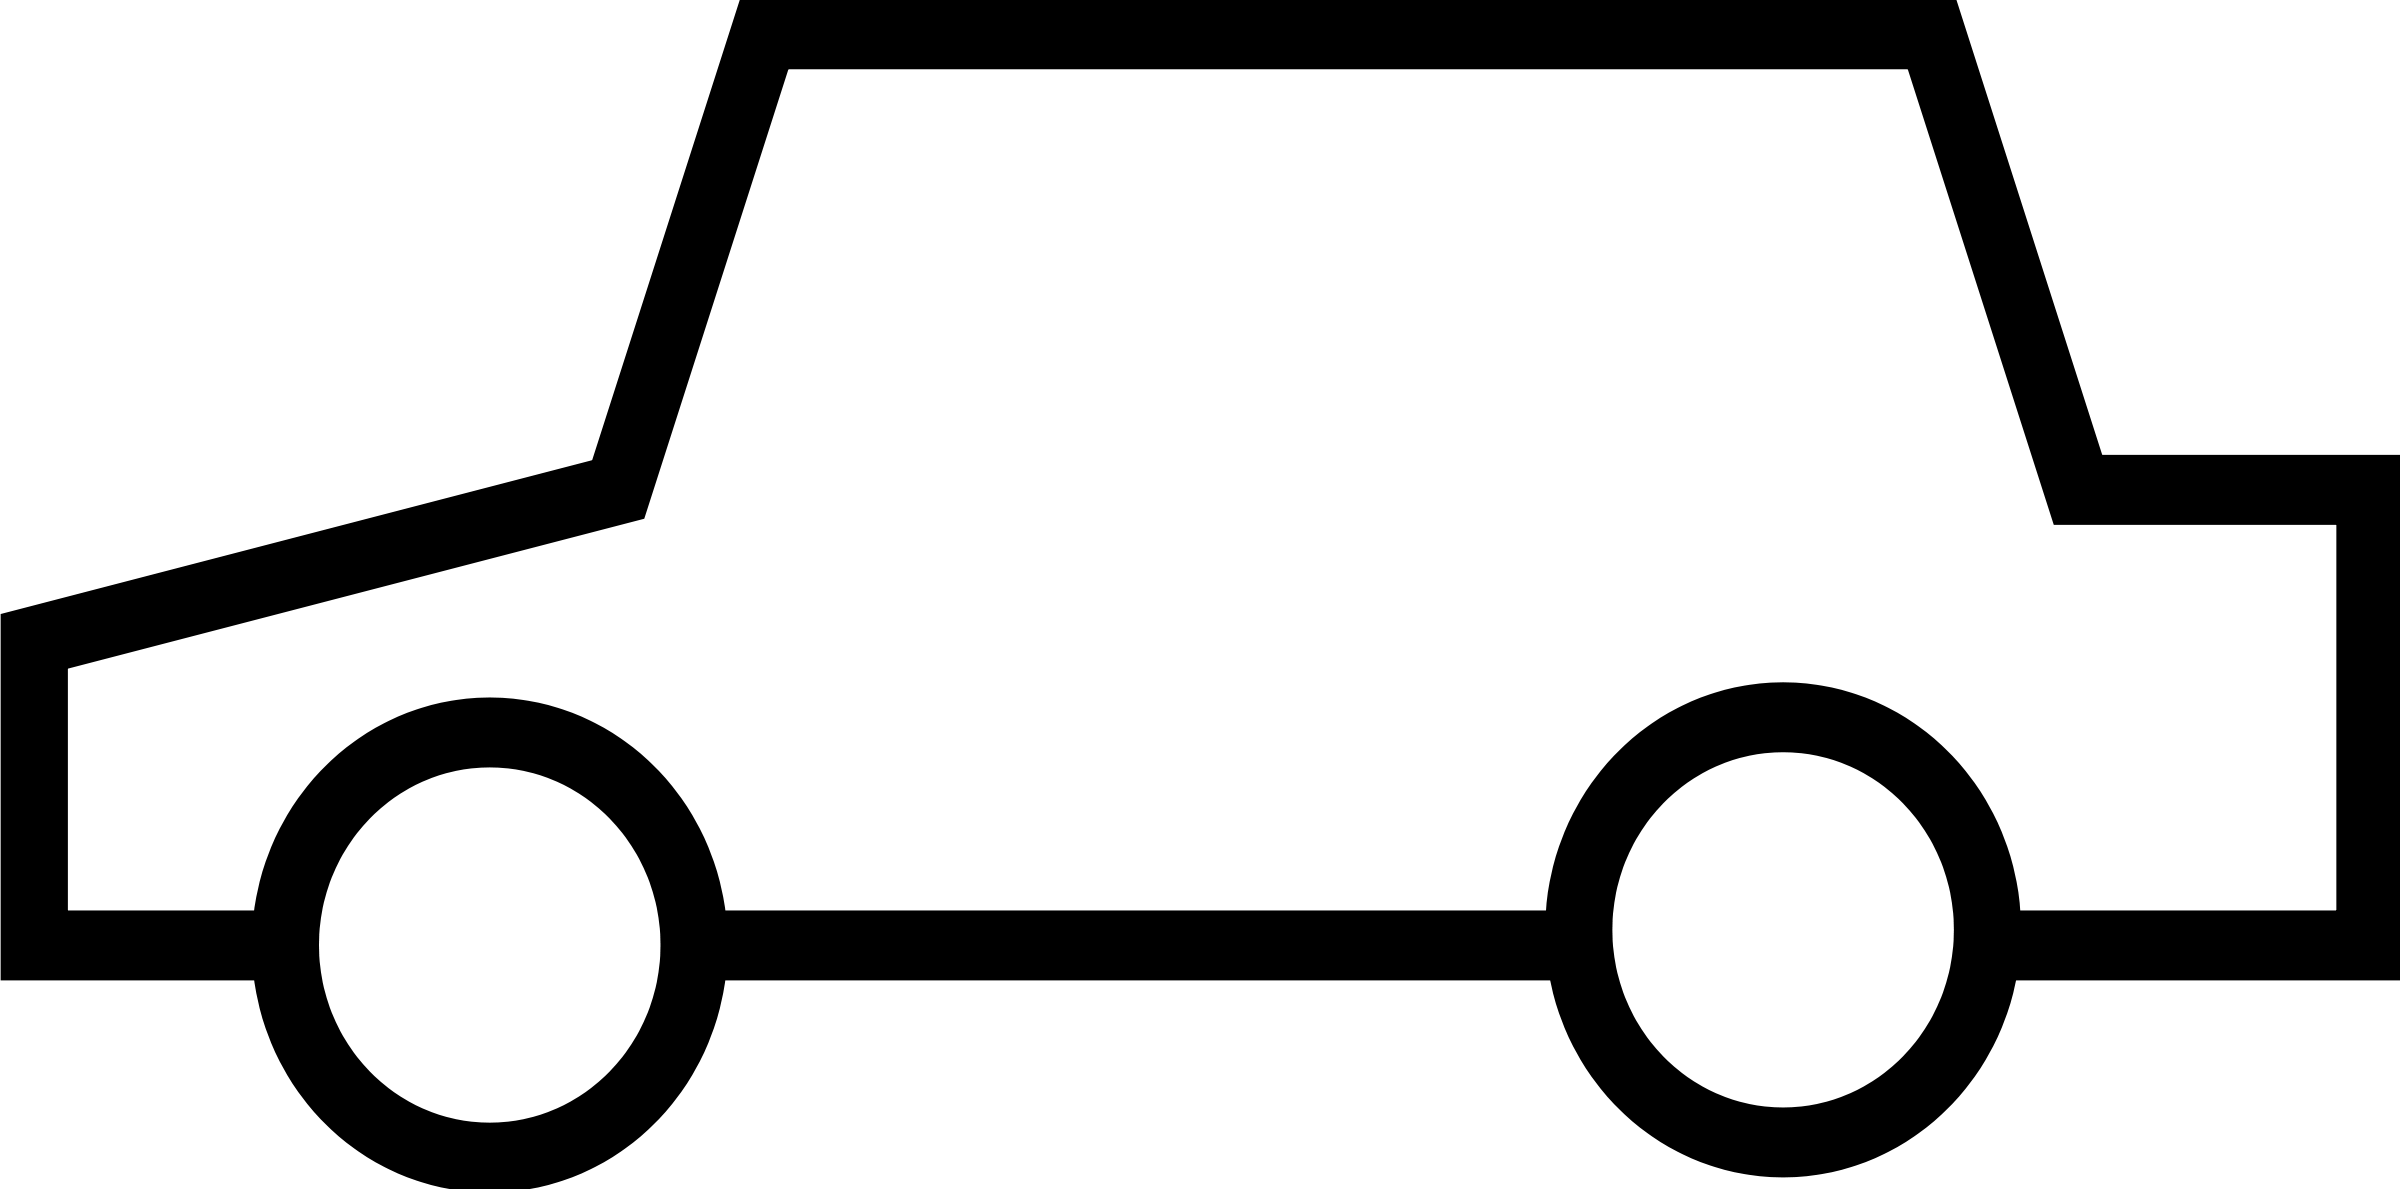 Car side view clipart graphic black and white library 28+ Collection of A Clipart Car | High quality, free cliparts ... graphic black and white library